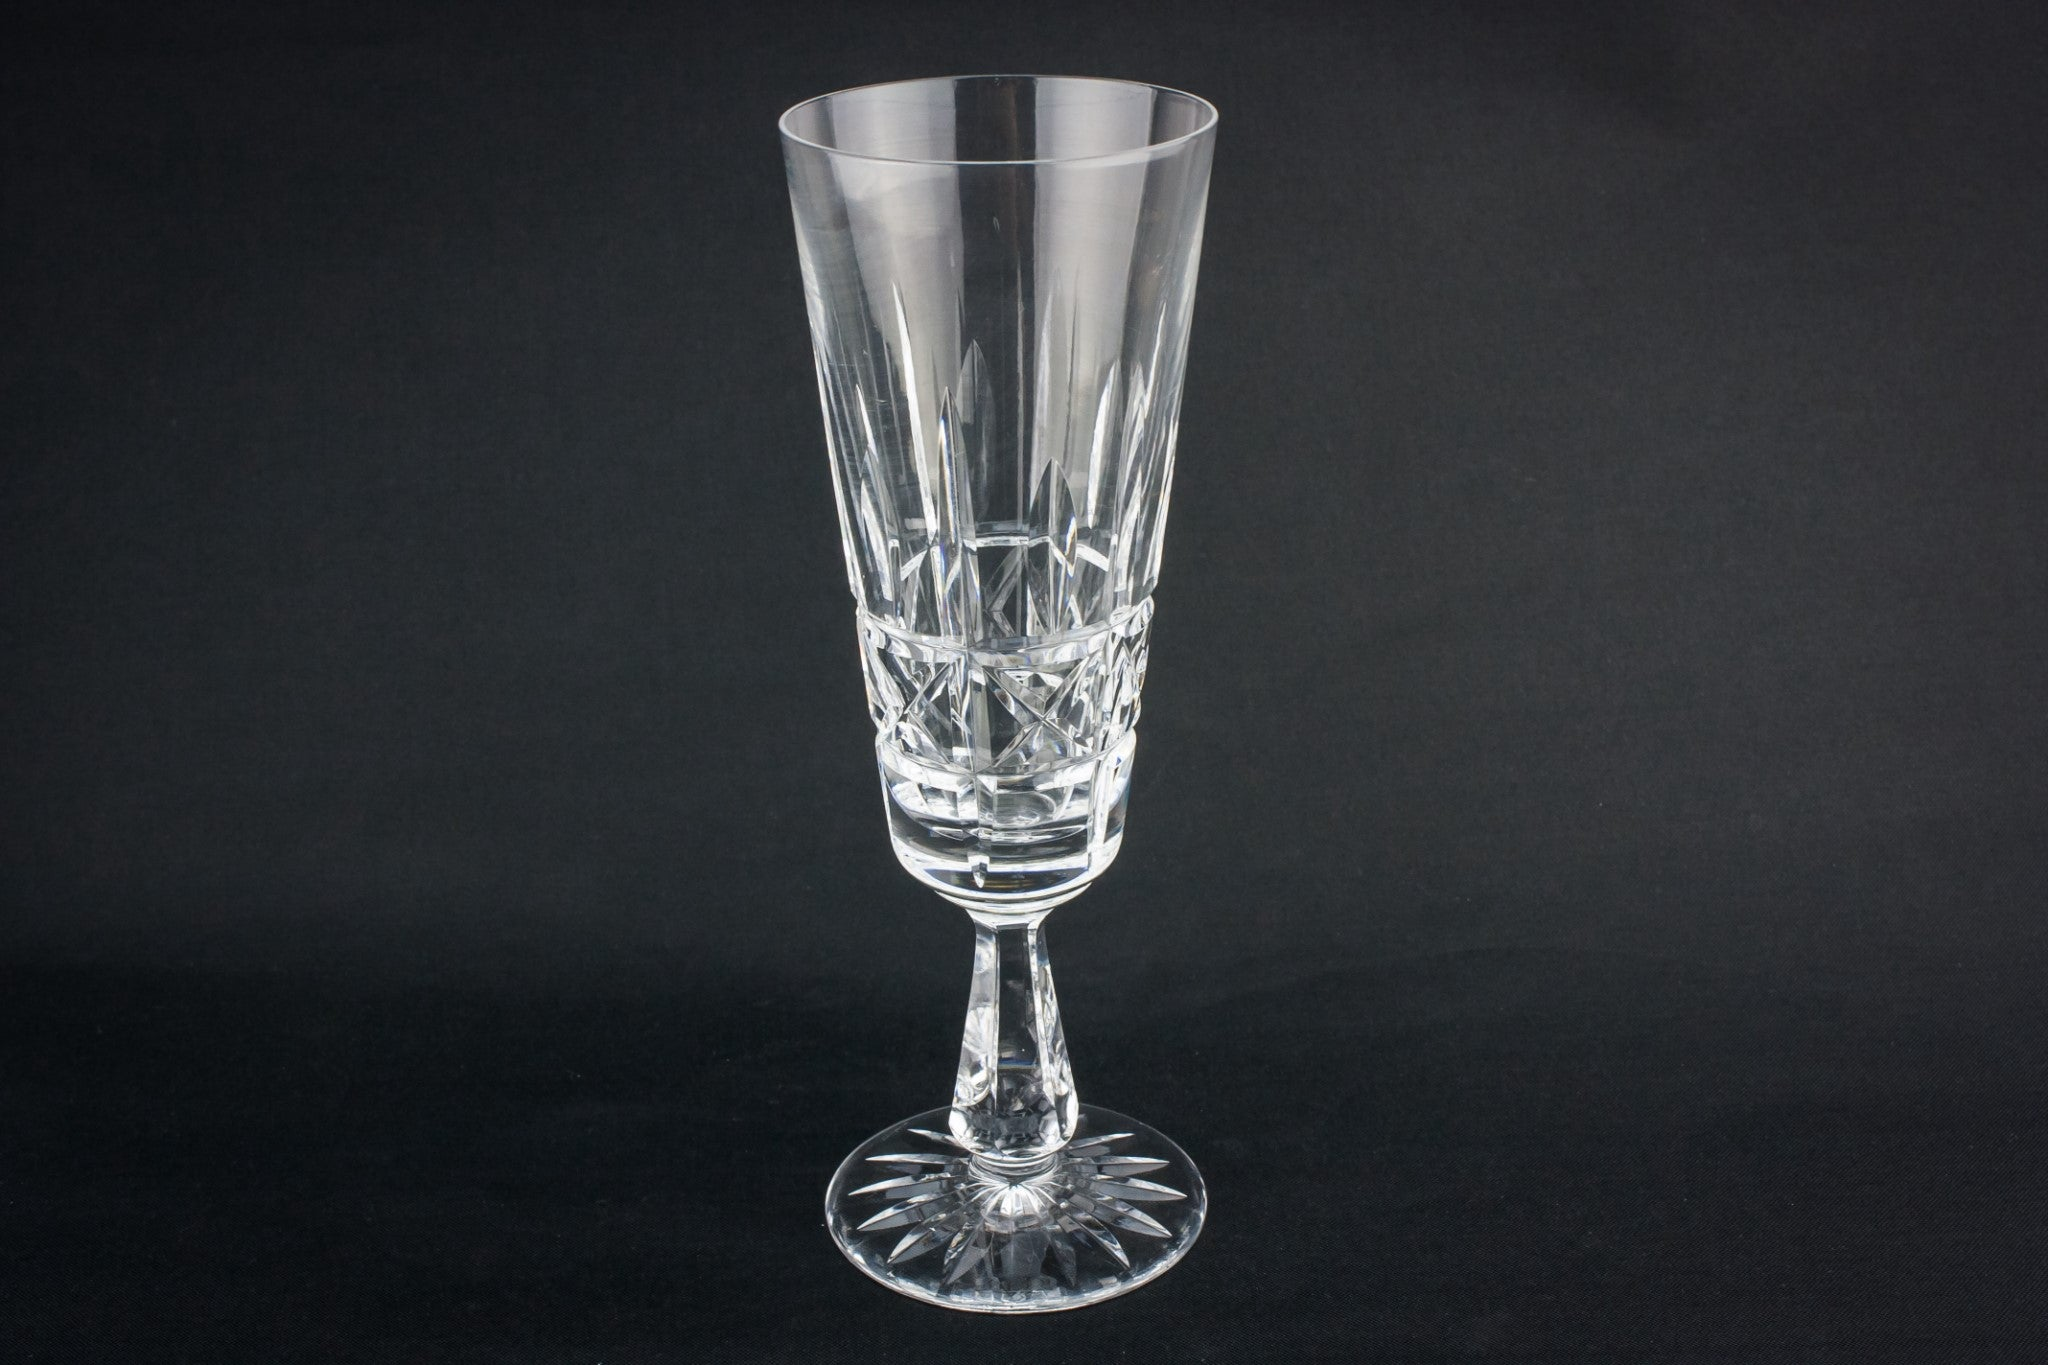 2 Waterford champagne flutes